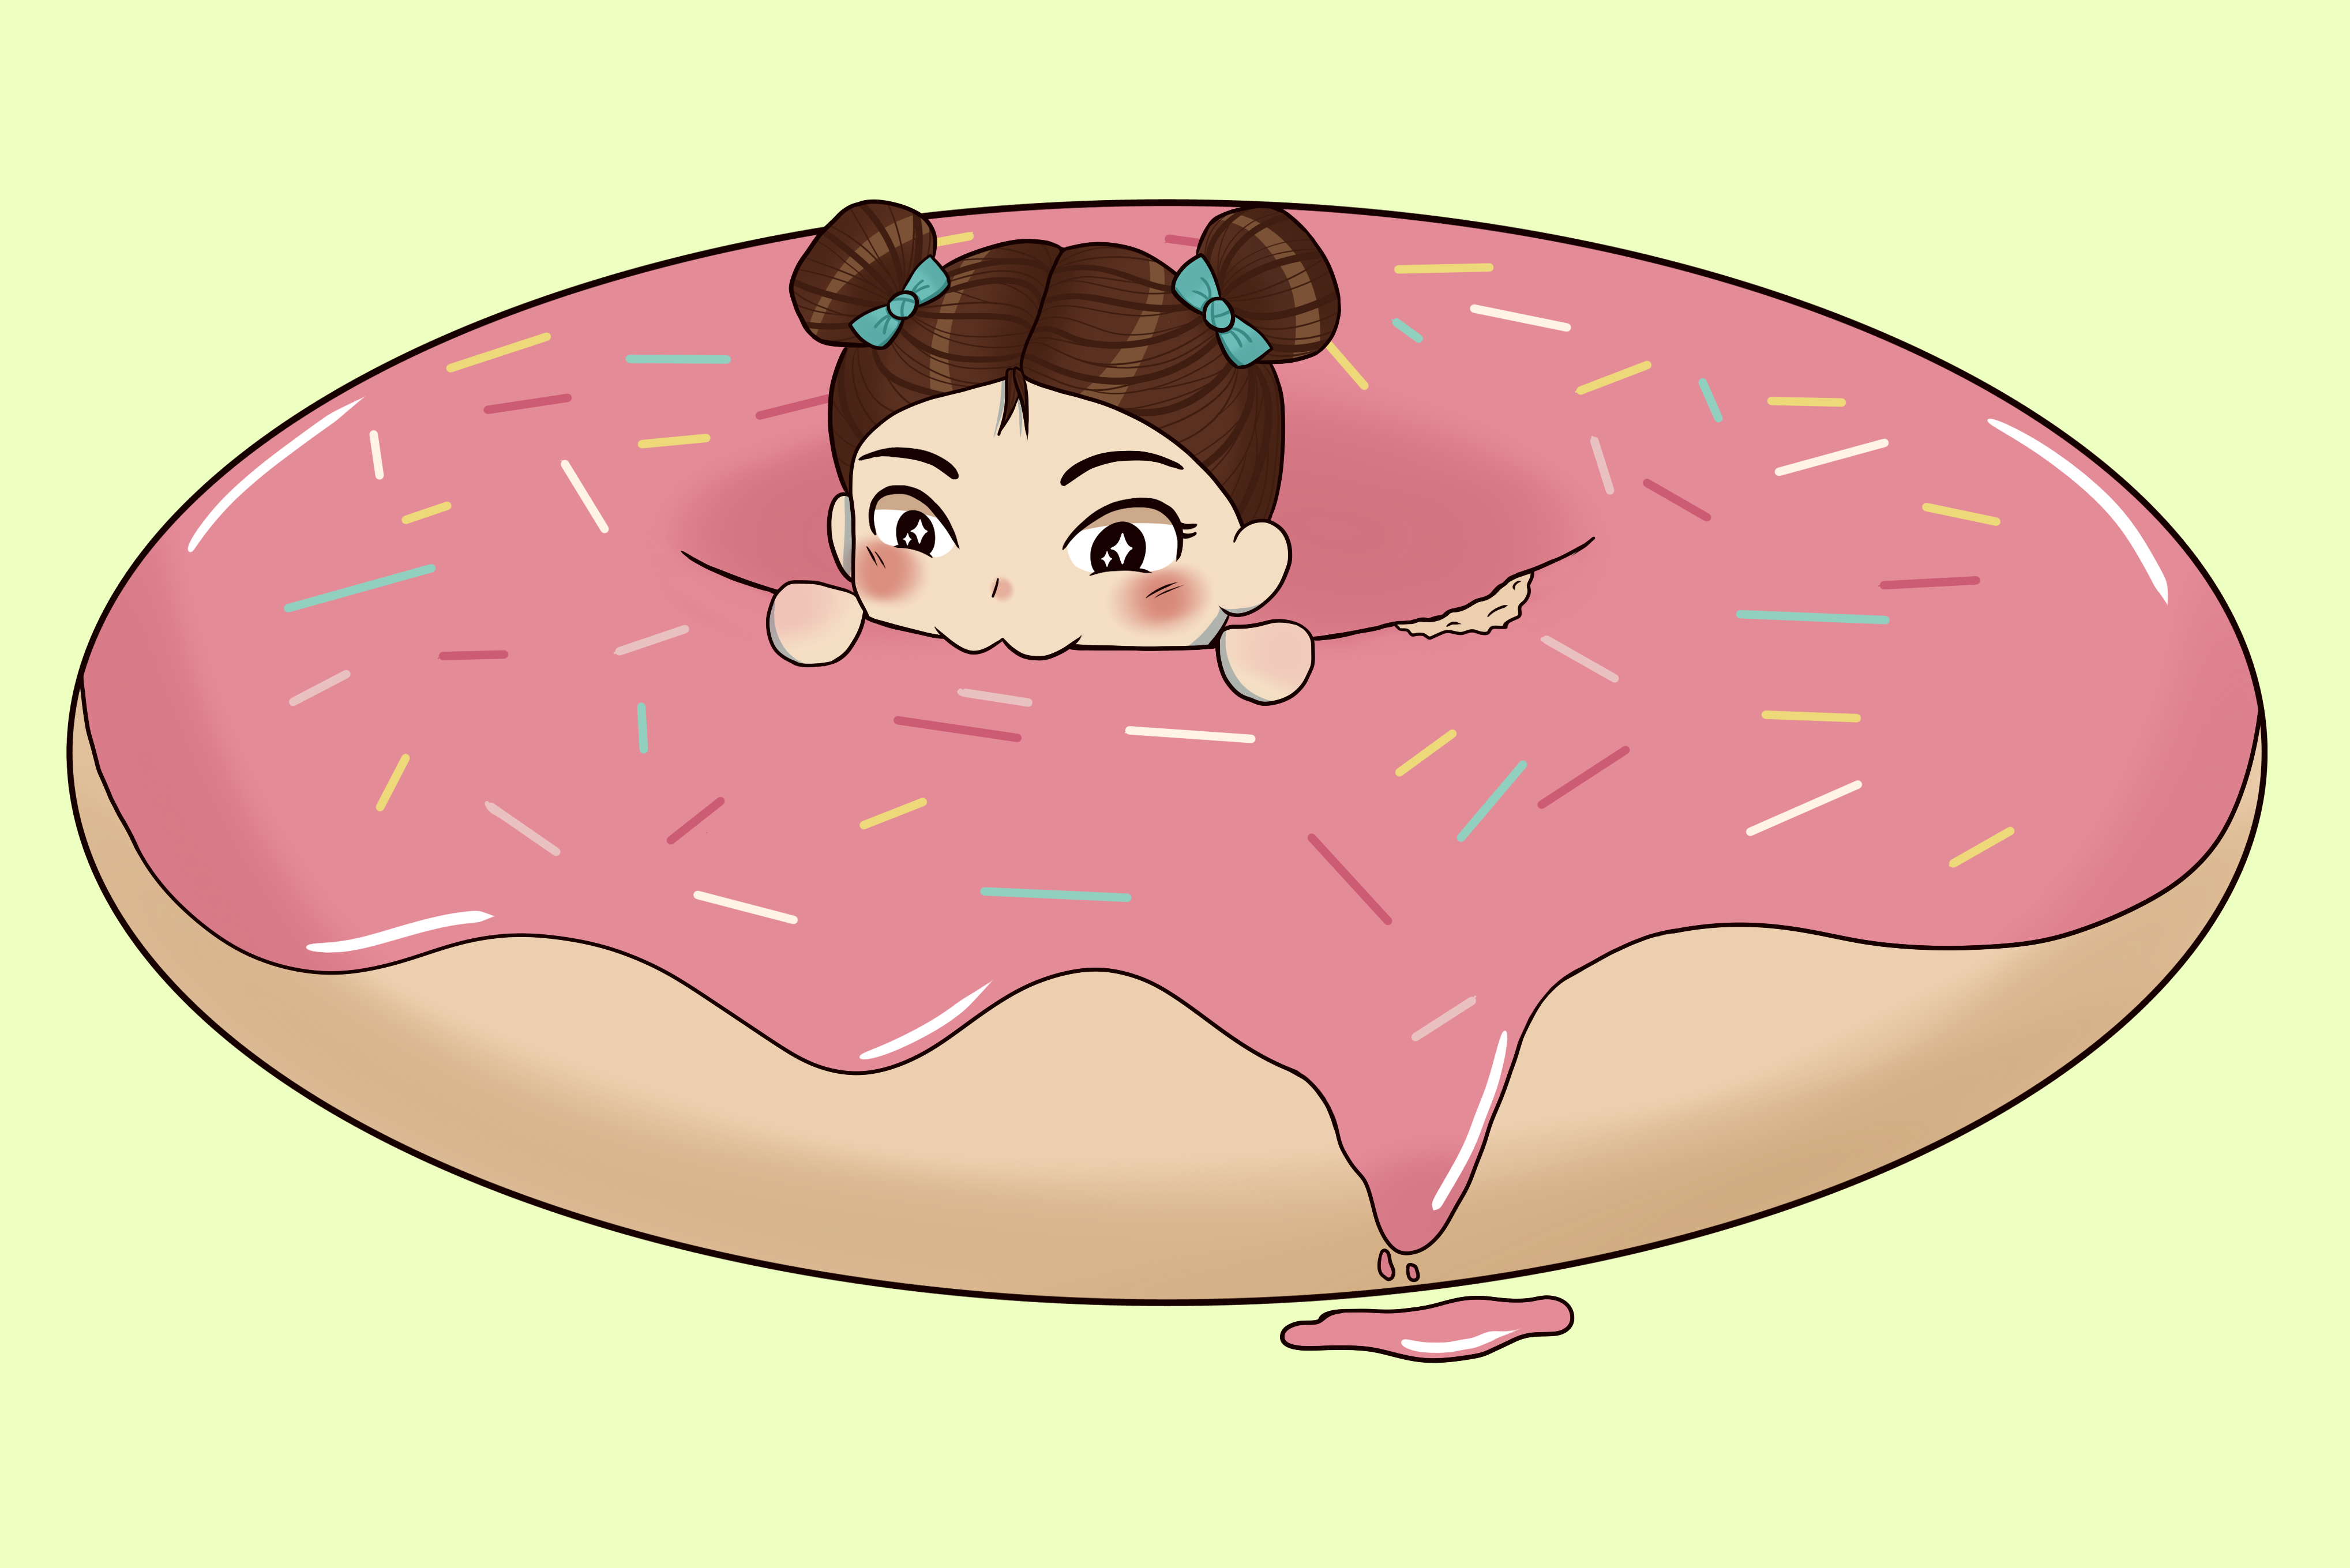 Give me the donuts